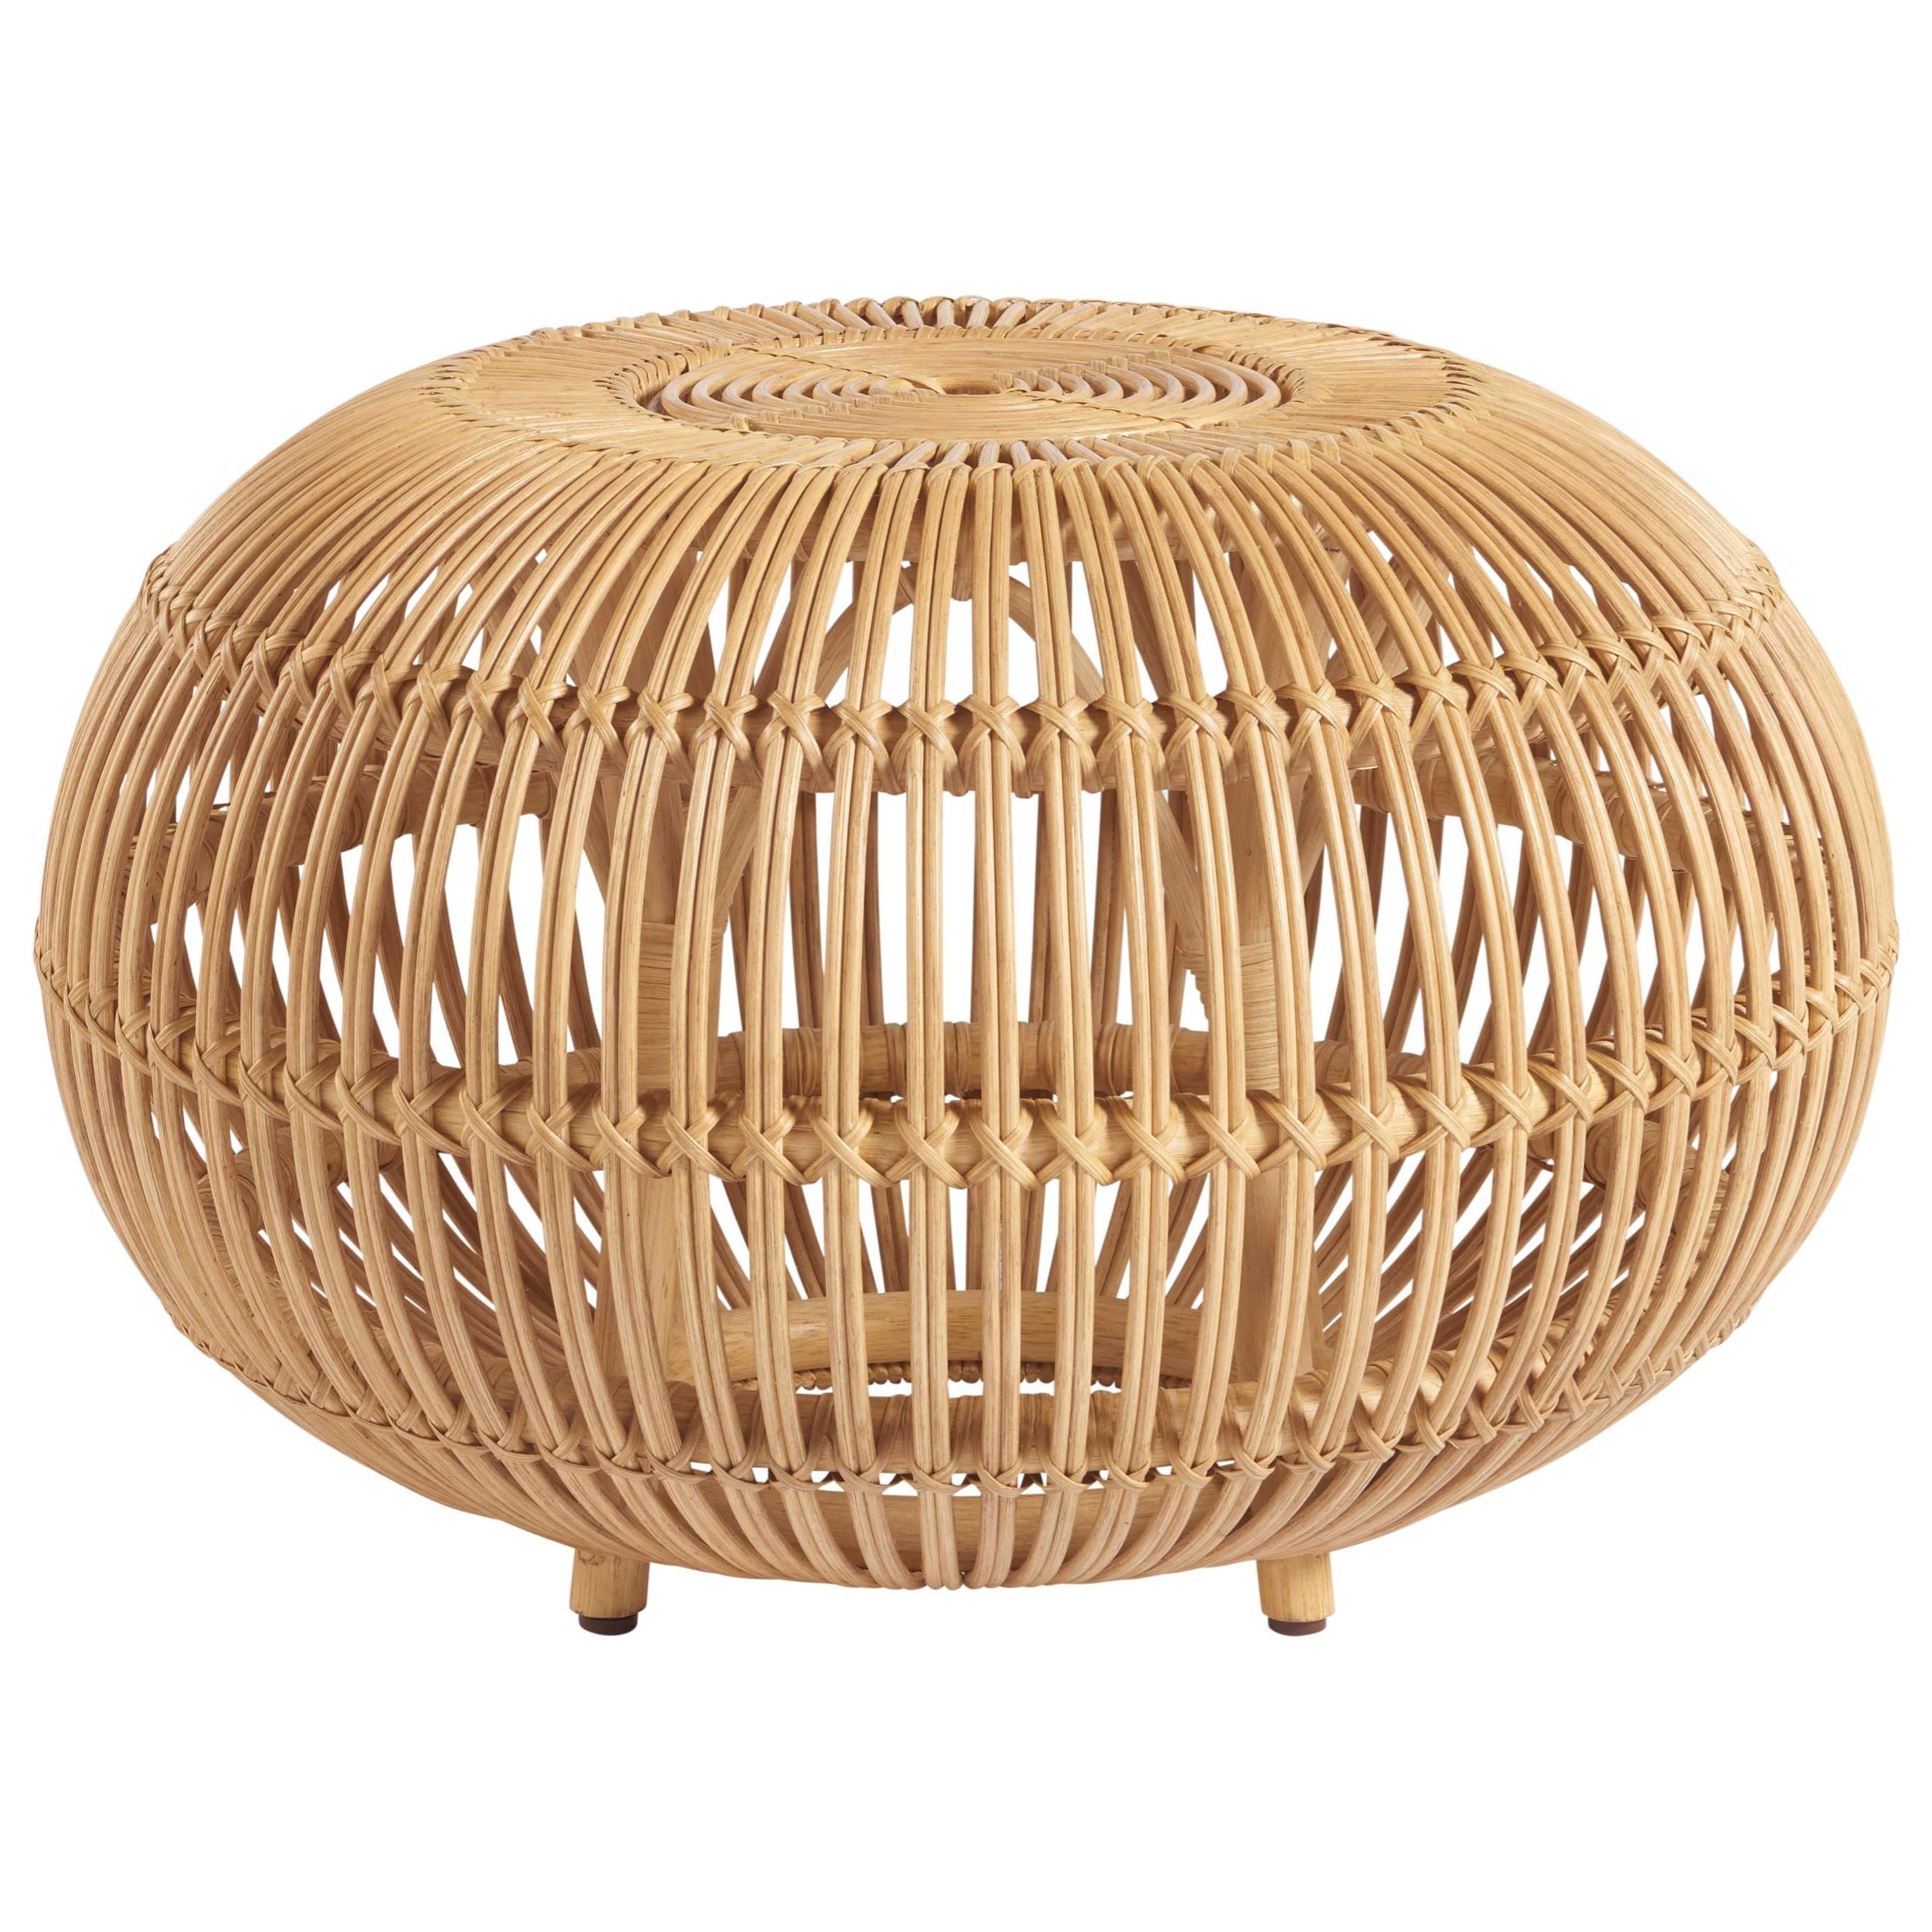 Universal Coastal Living Home Escape 833811 Small Rattan Scatter Table Upper Room Home Furnishings End Tables